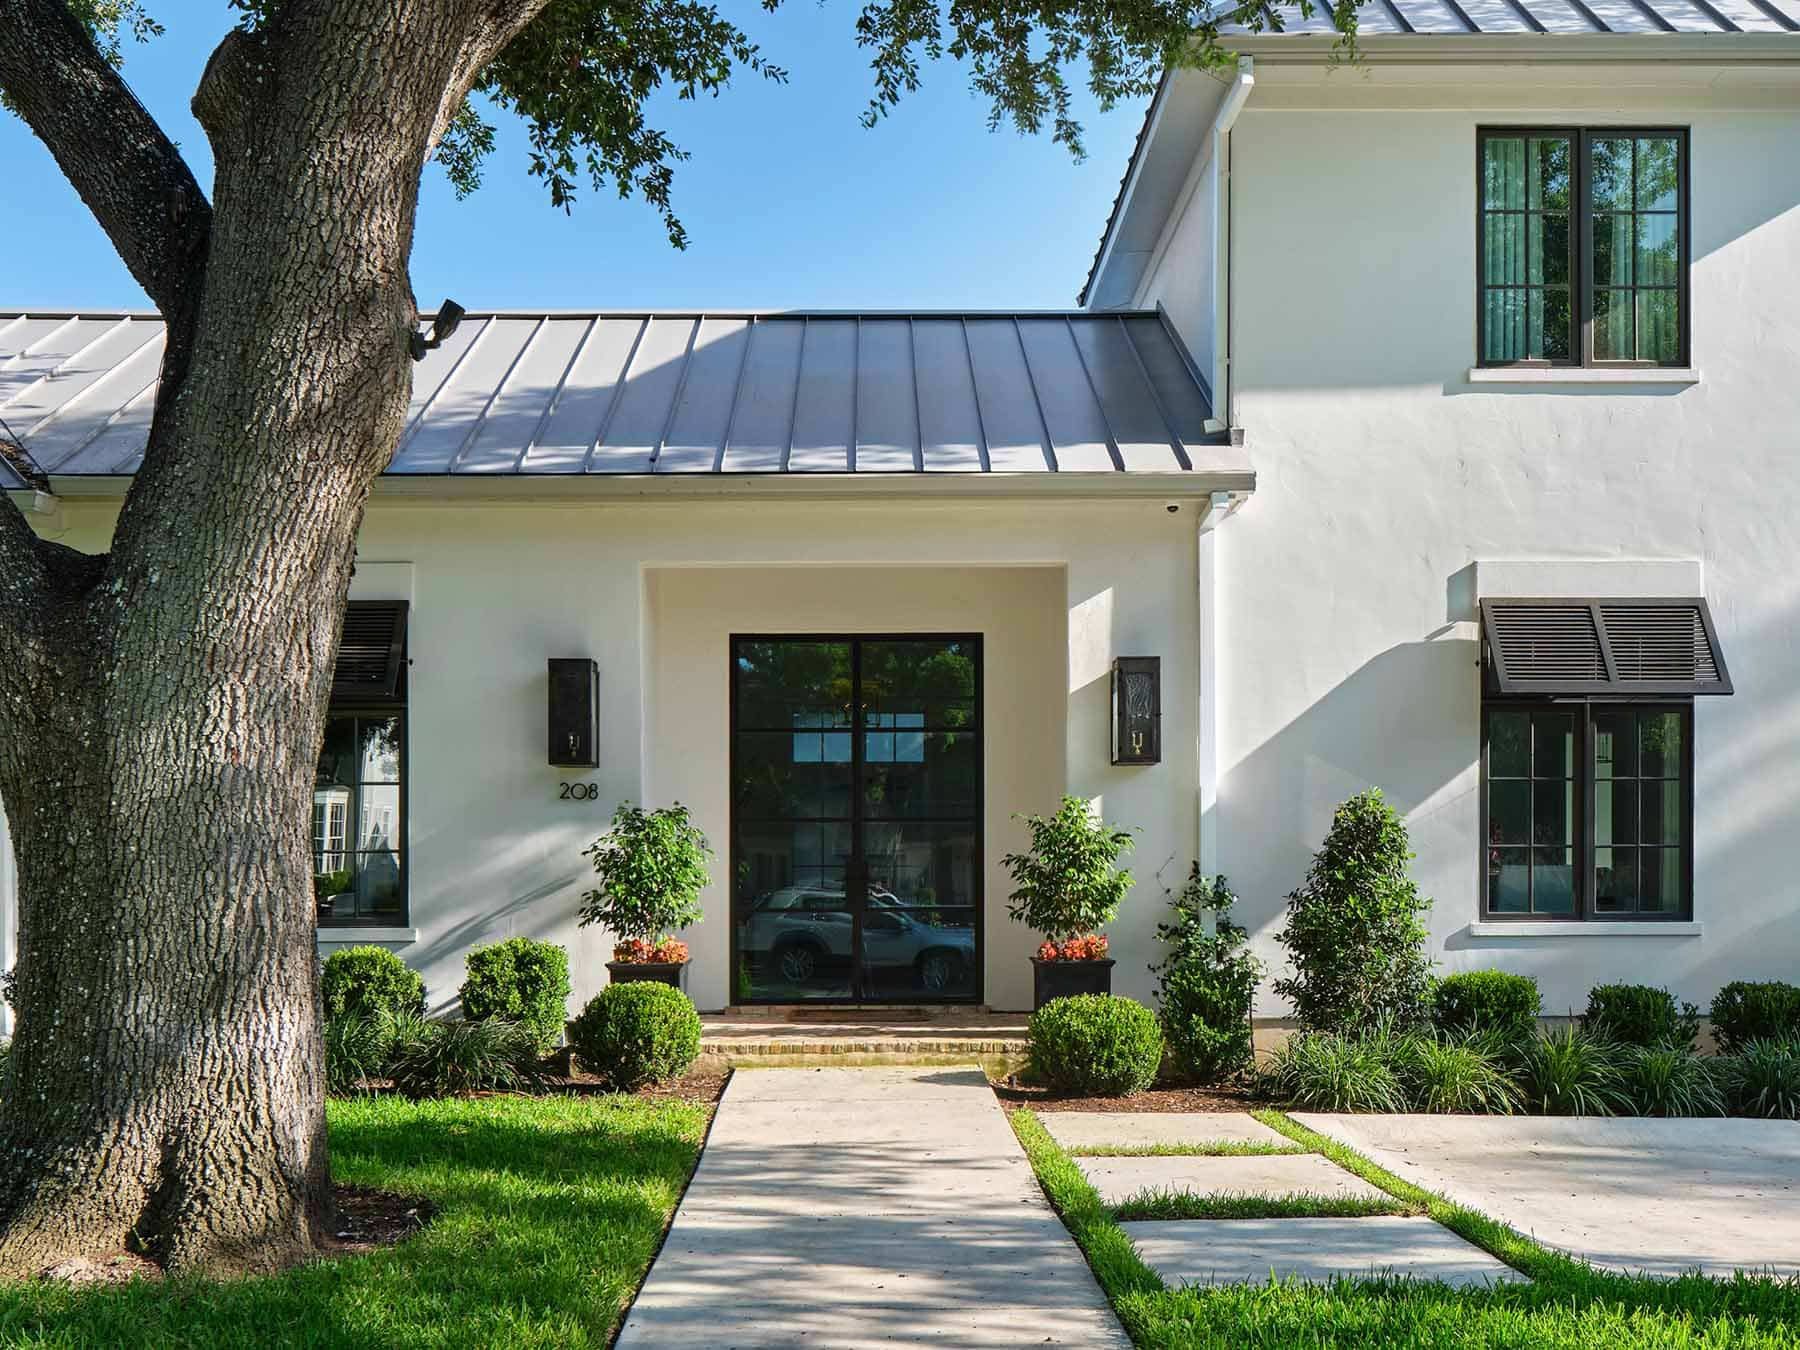 Alamo Heights TX home exterior in Sherwin Williams 7014 Eider White by Paper Moon Painting, house painter